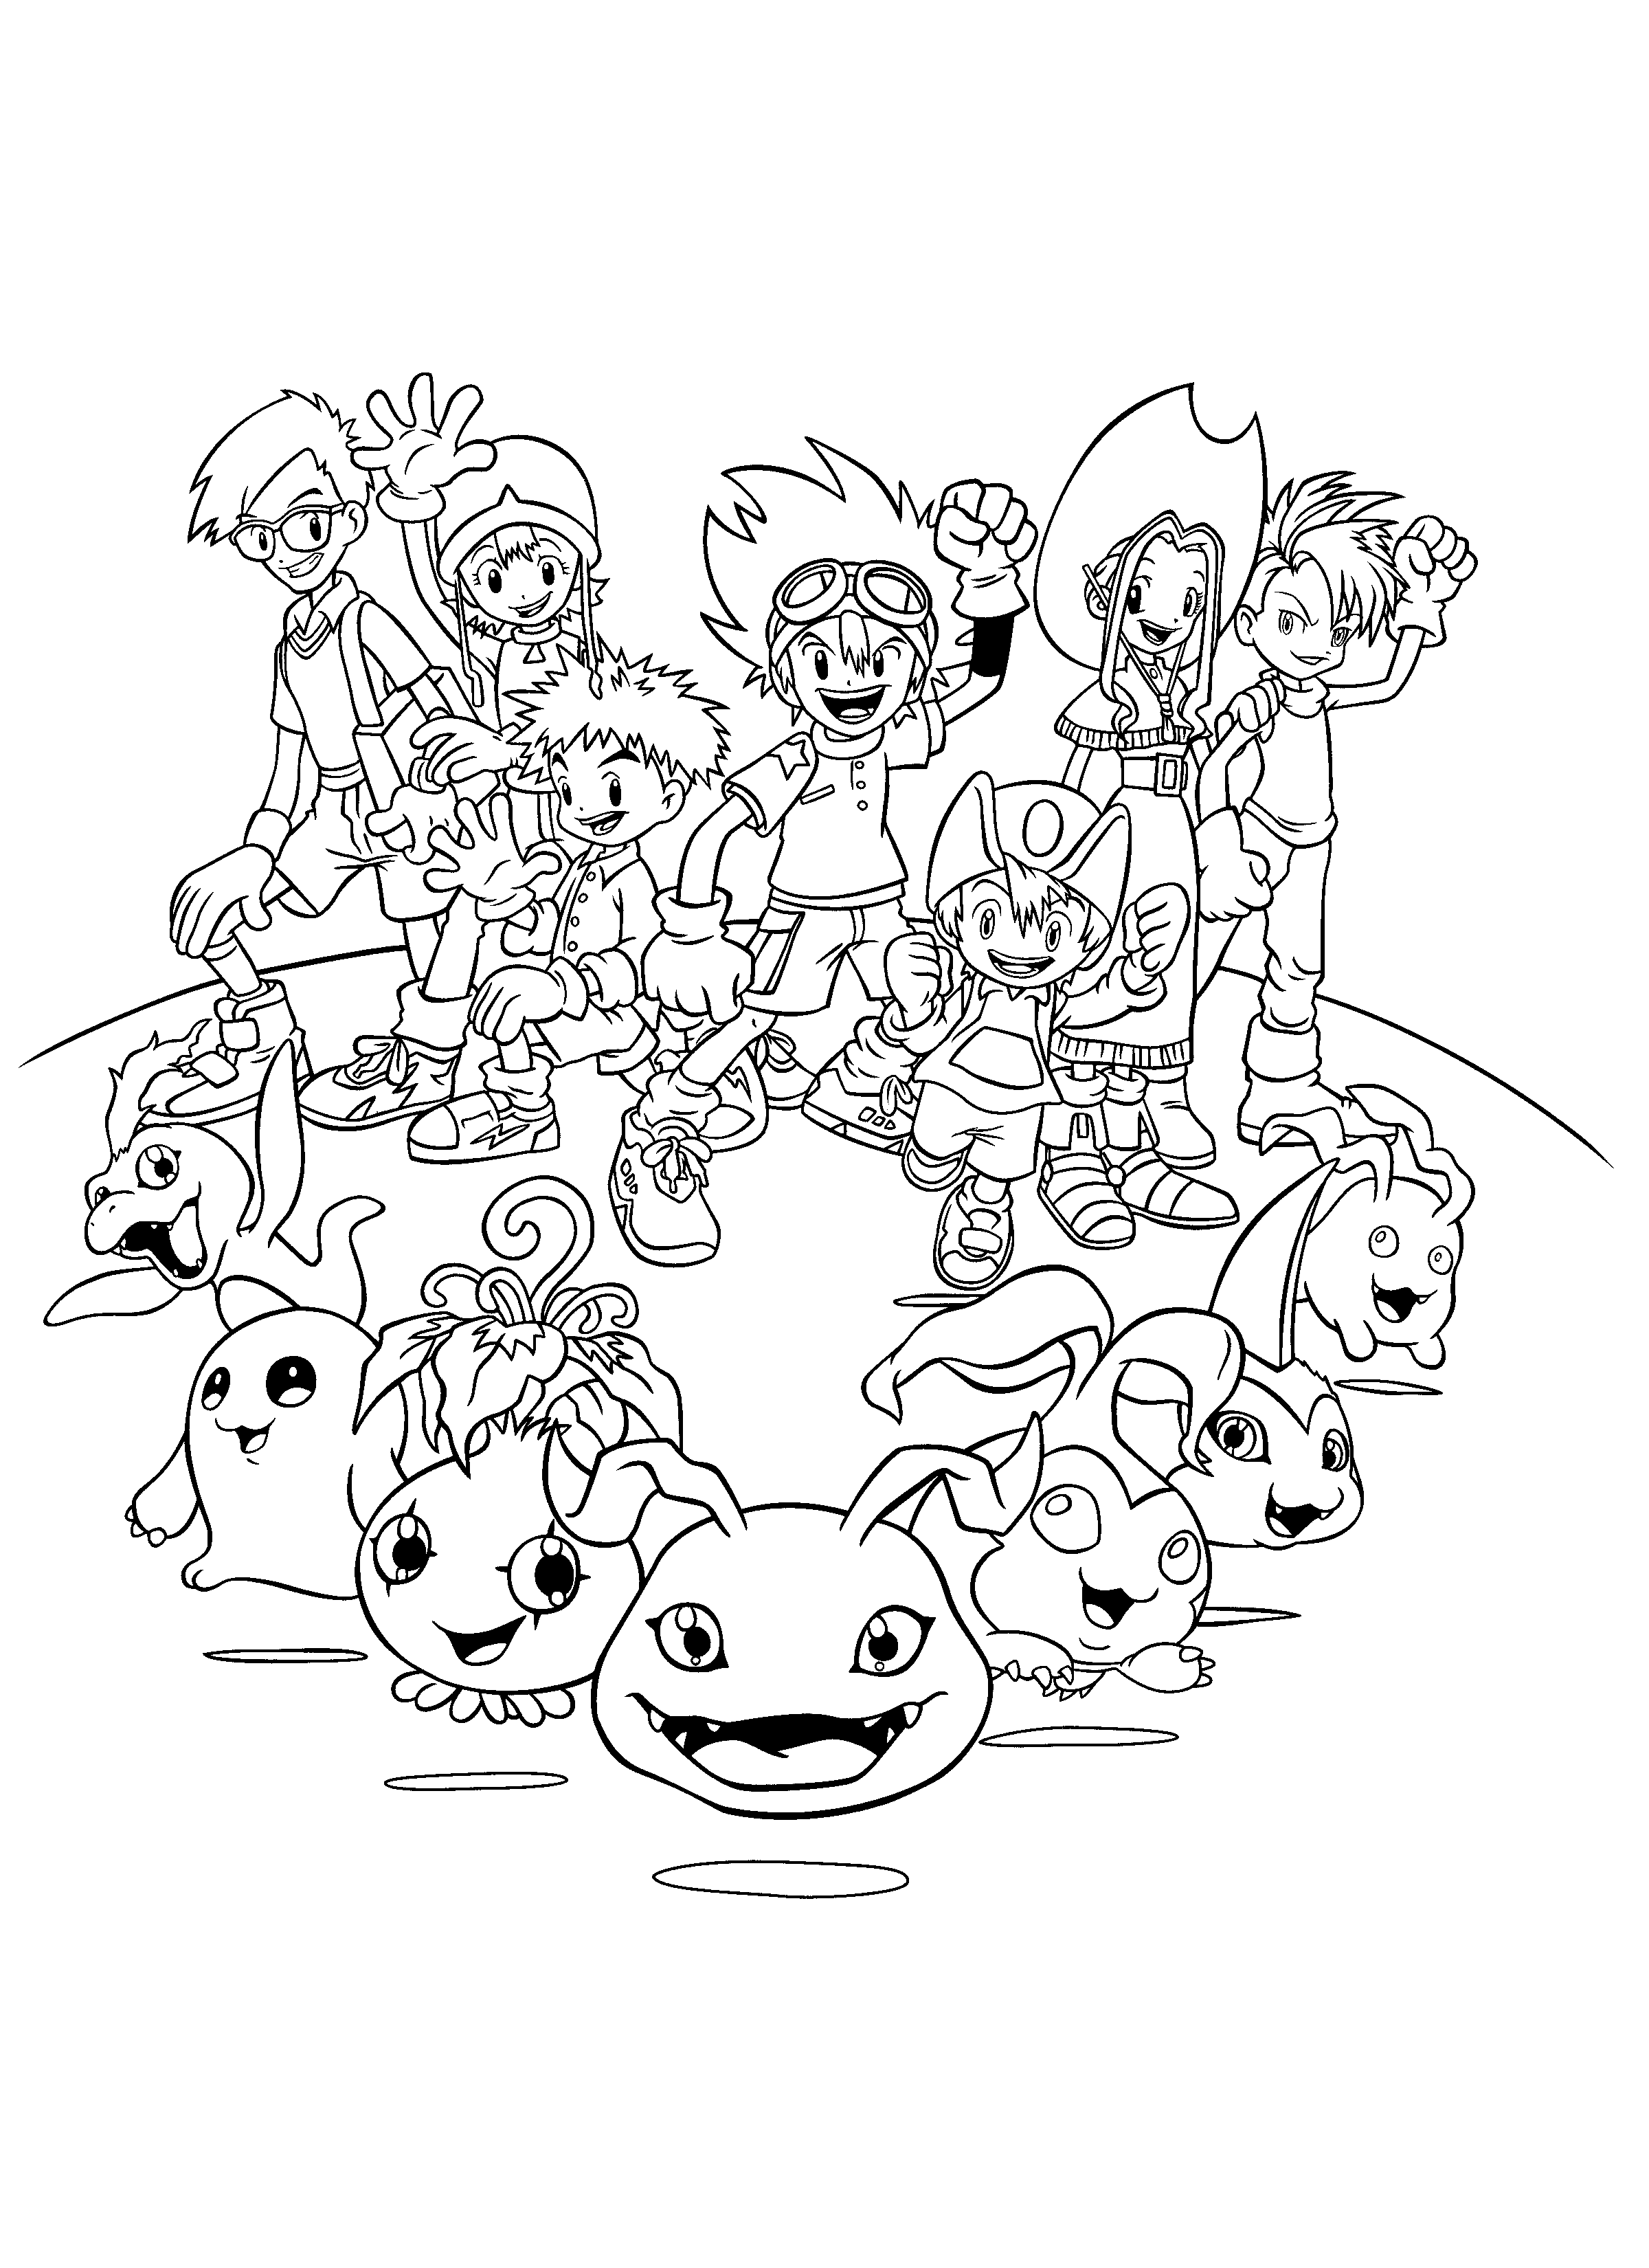 digimon coloring pages printable digimon cartoons page 4 printable coloring pages printable coloring digimon pages